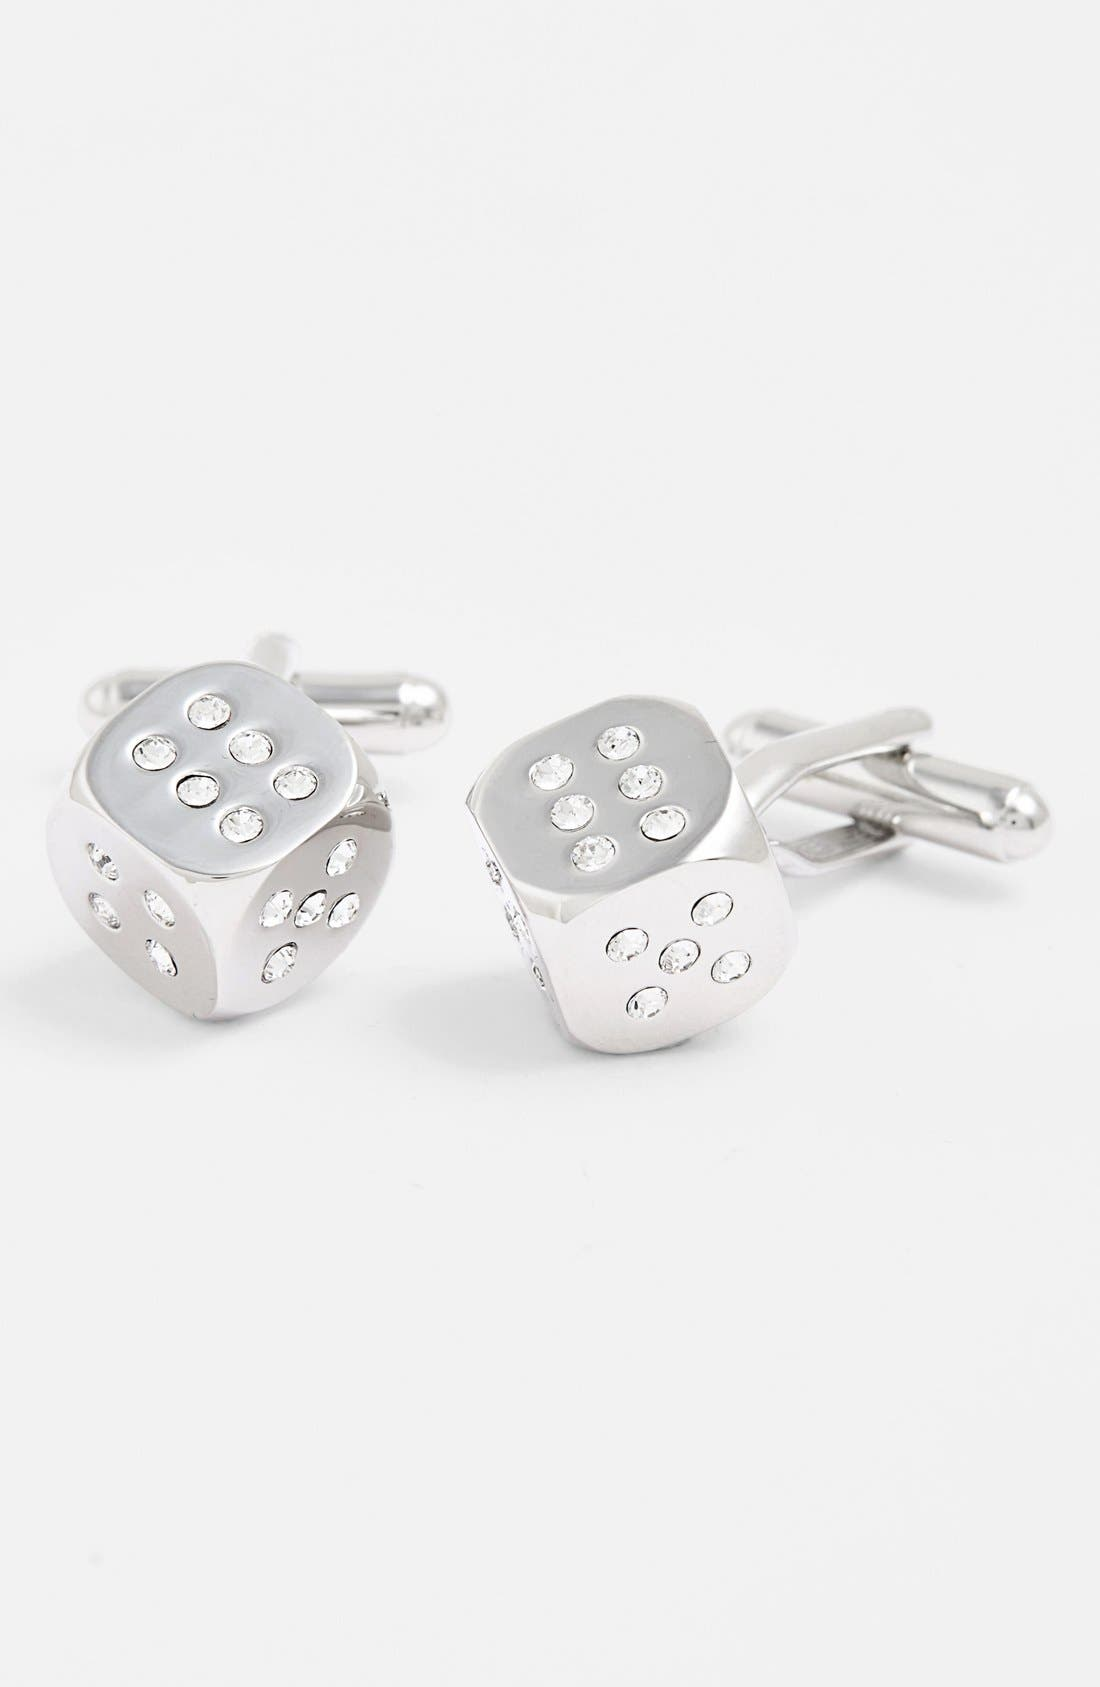 Main Image - LINK UP Dice Cuff Links